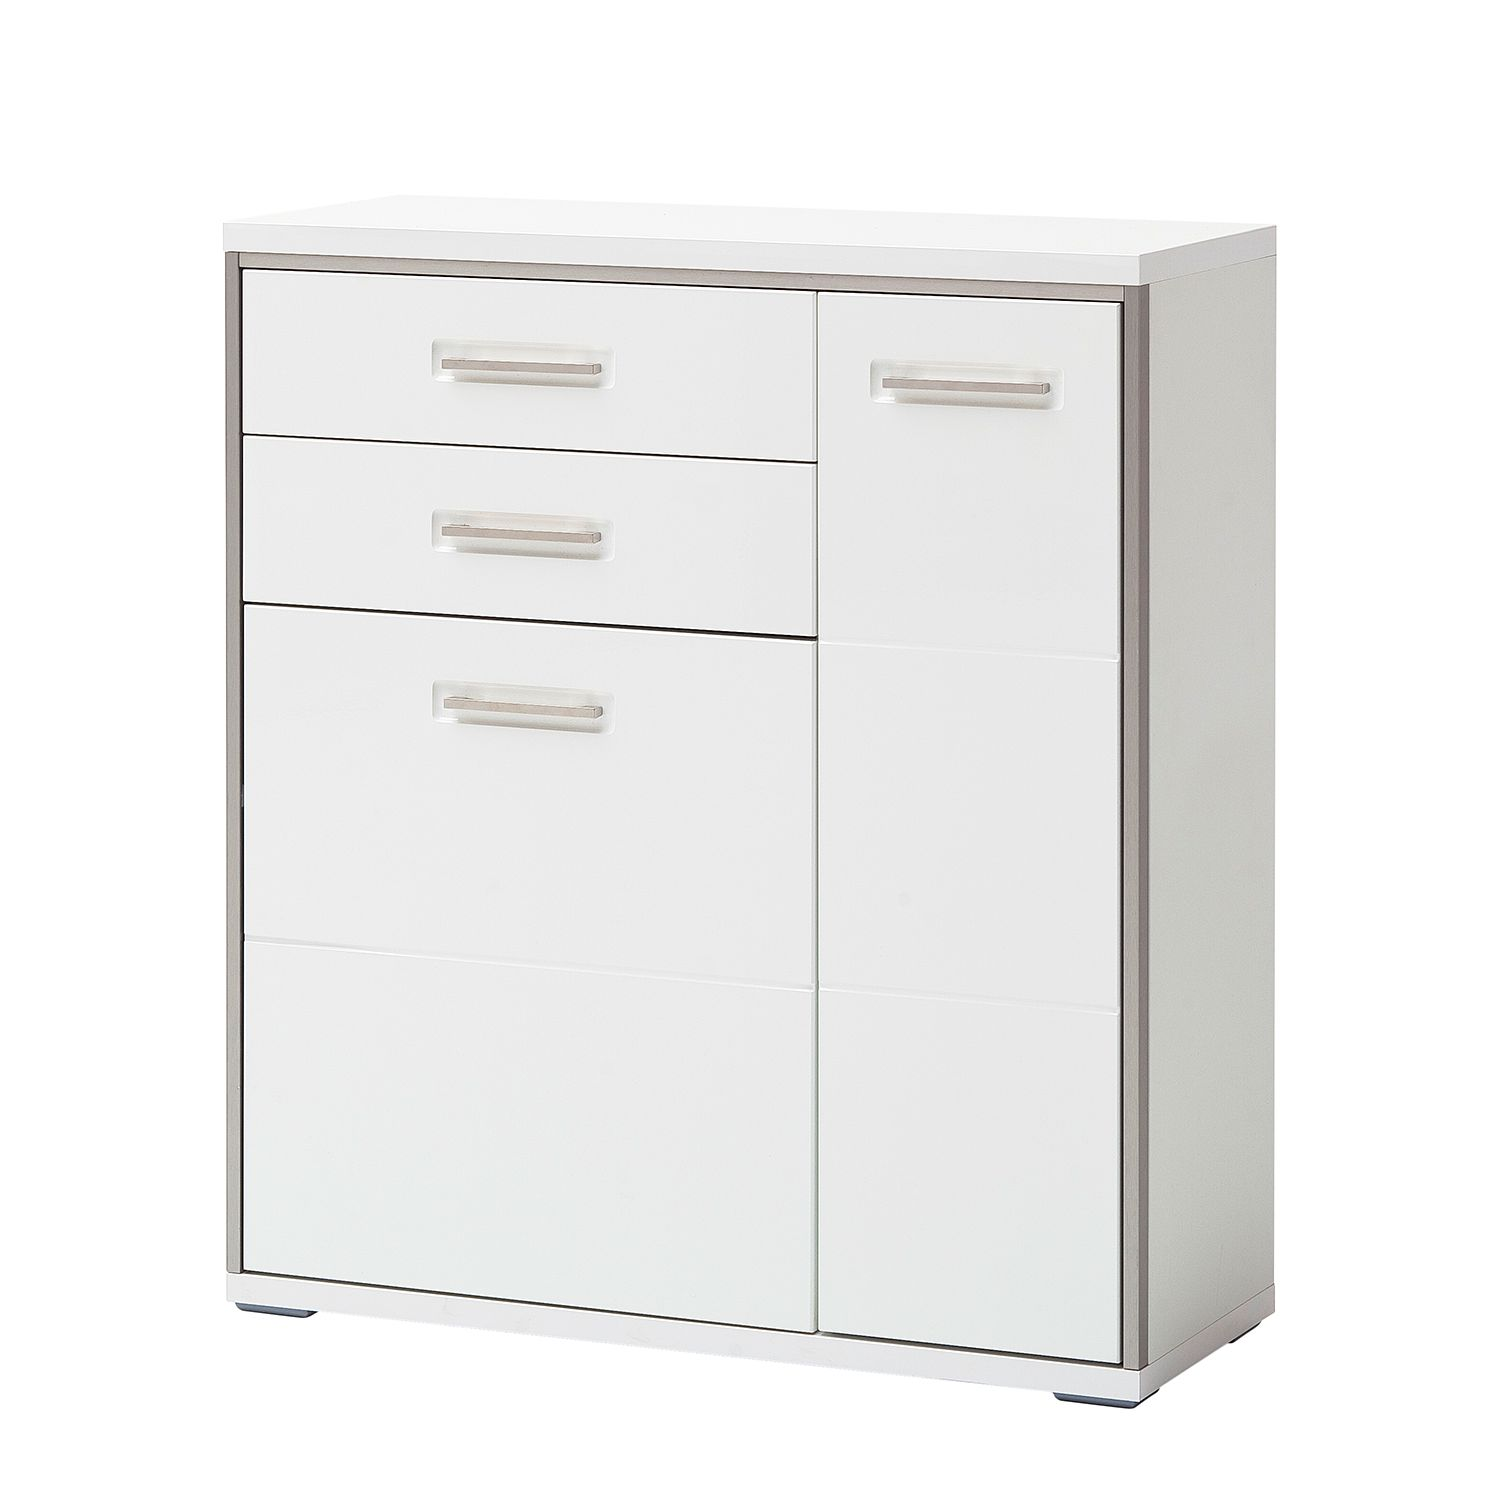 Commode Arco II - Blanc brillant, loftscape